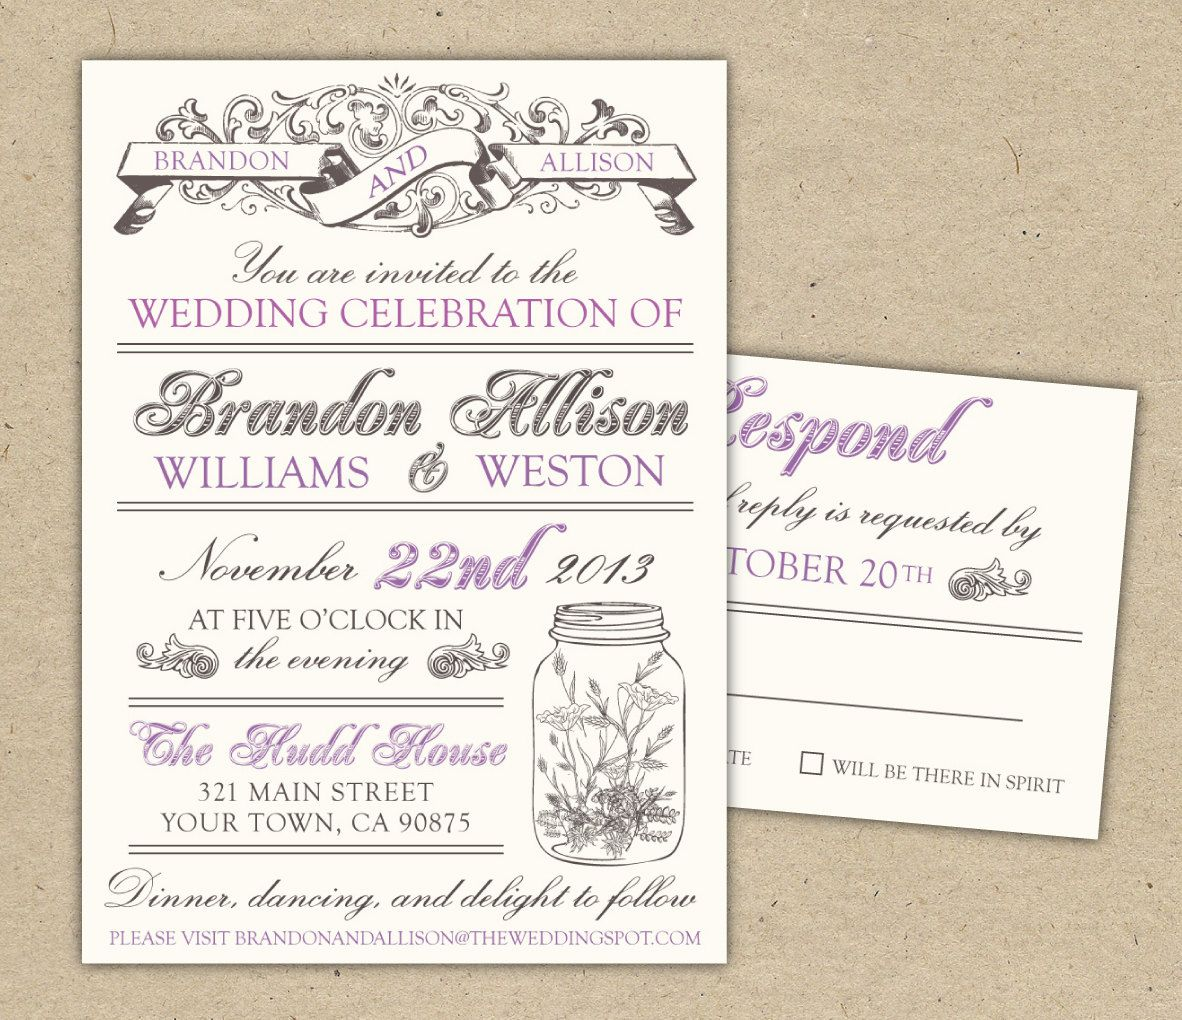 Download Free Wedding Invitation Template orderecigsjuiceinfo